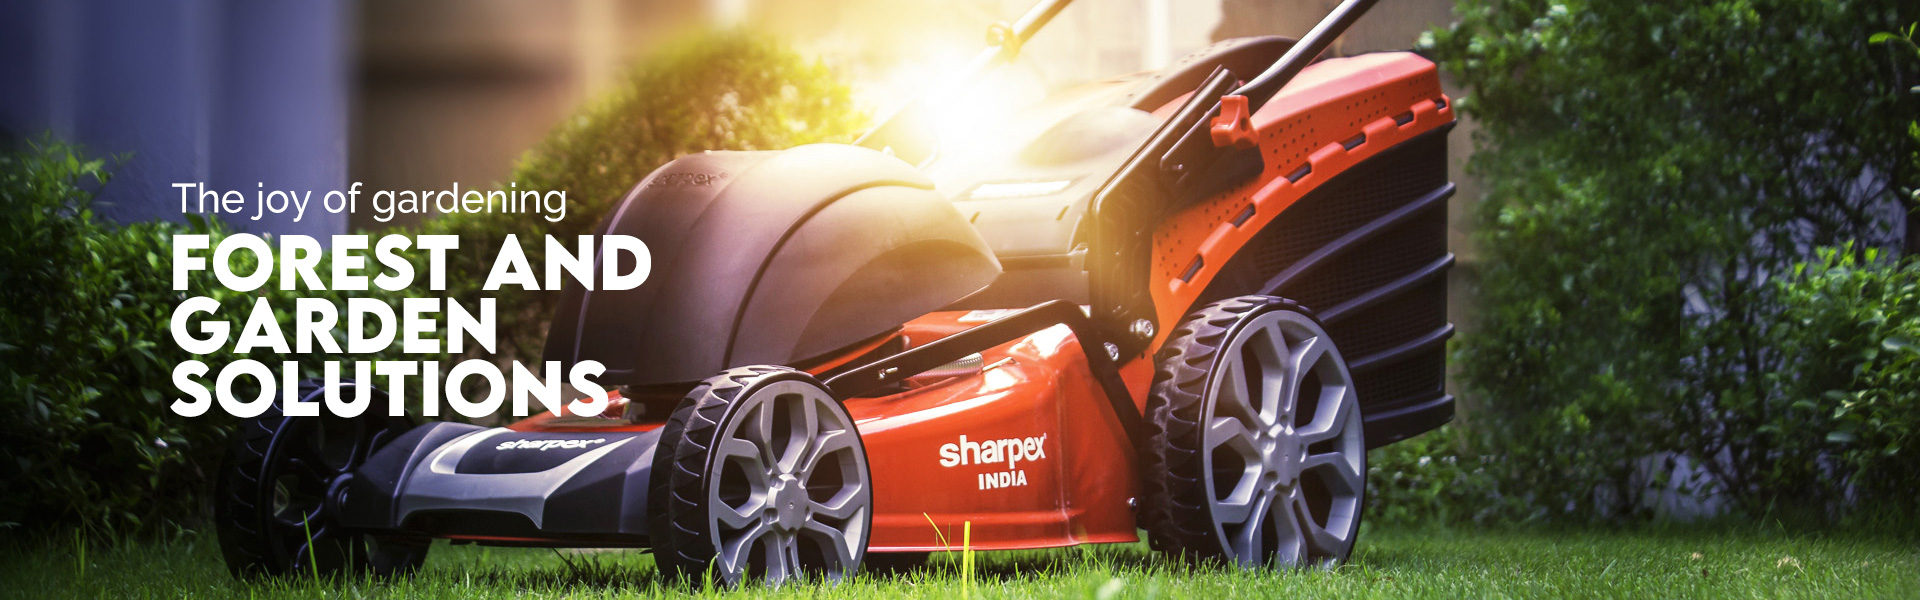 Sharpex Engineering Lawn Mowers India, Gardening,Manual,Electric Lawn Mowers Grass Cutting Machine, Snake Catcher Tools